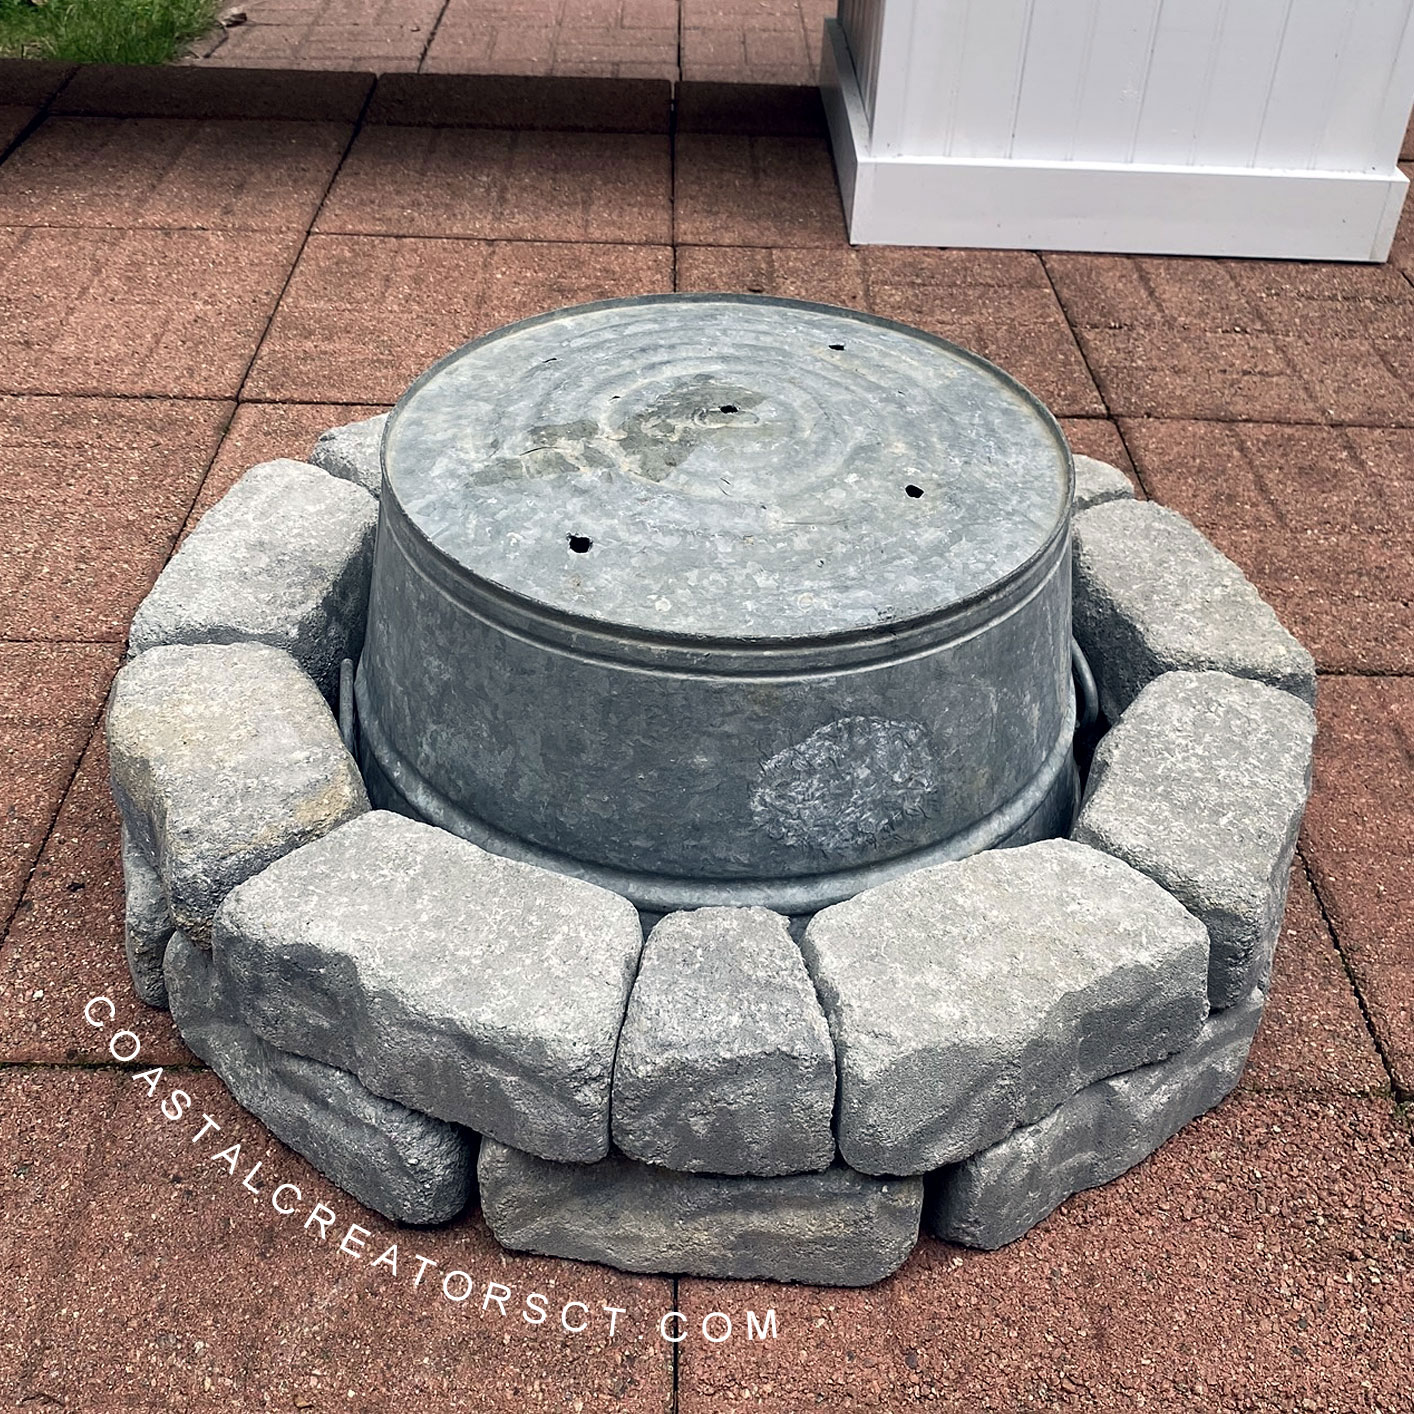 How to Build a Backyard Fire Pit in One Hour